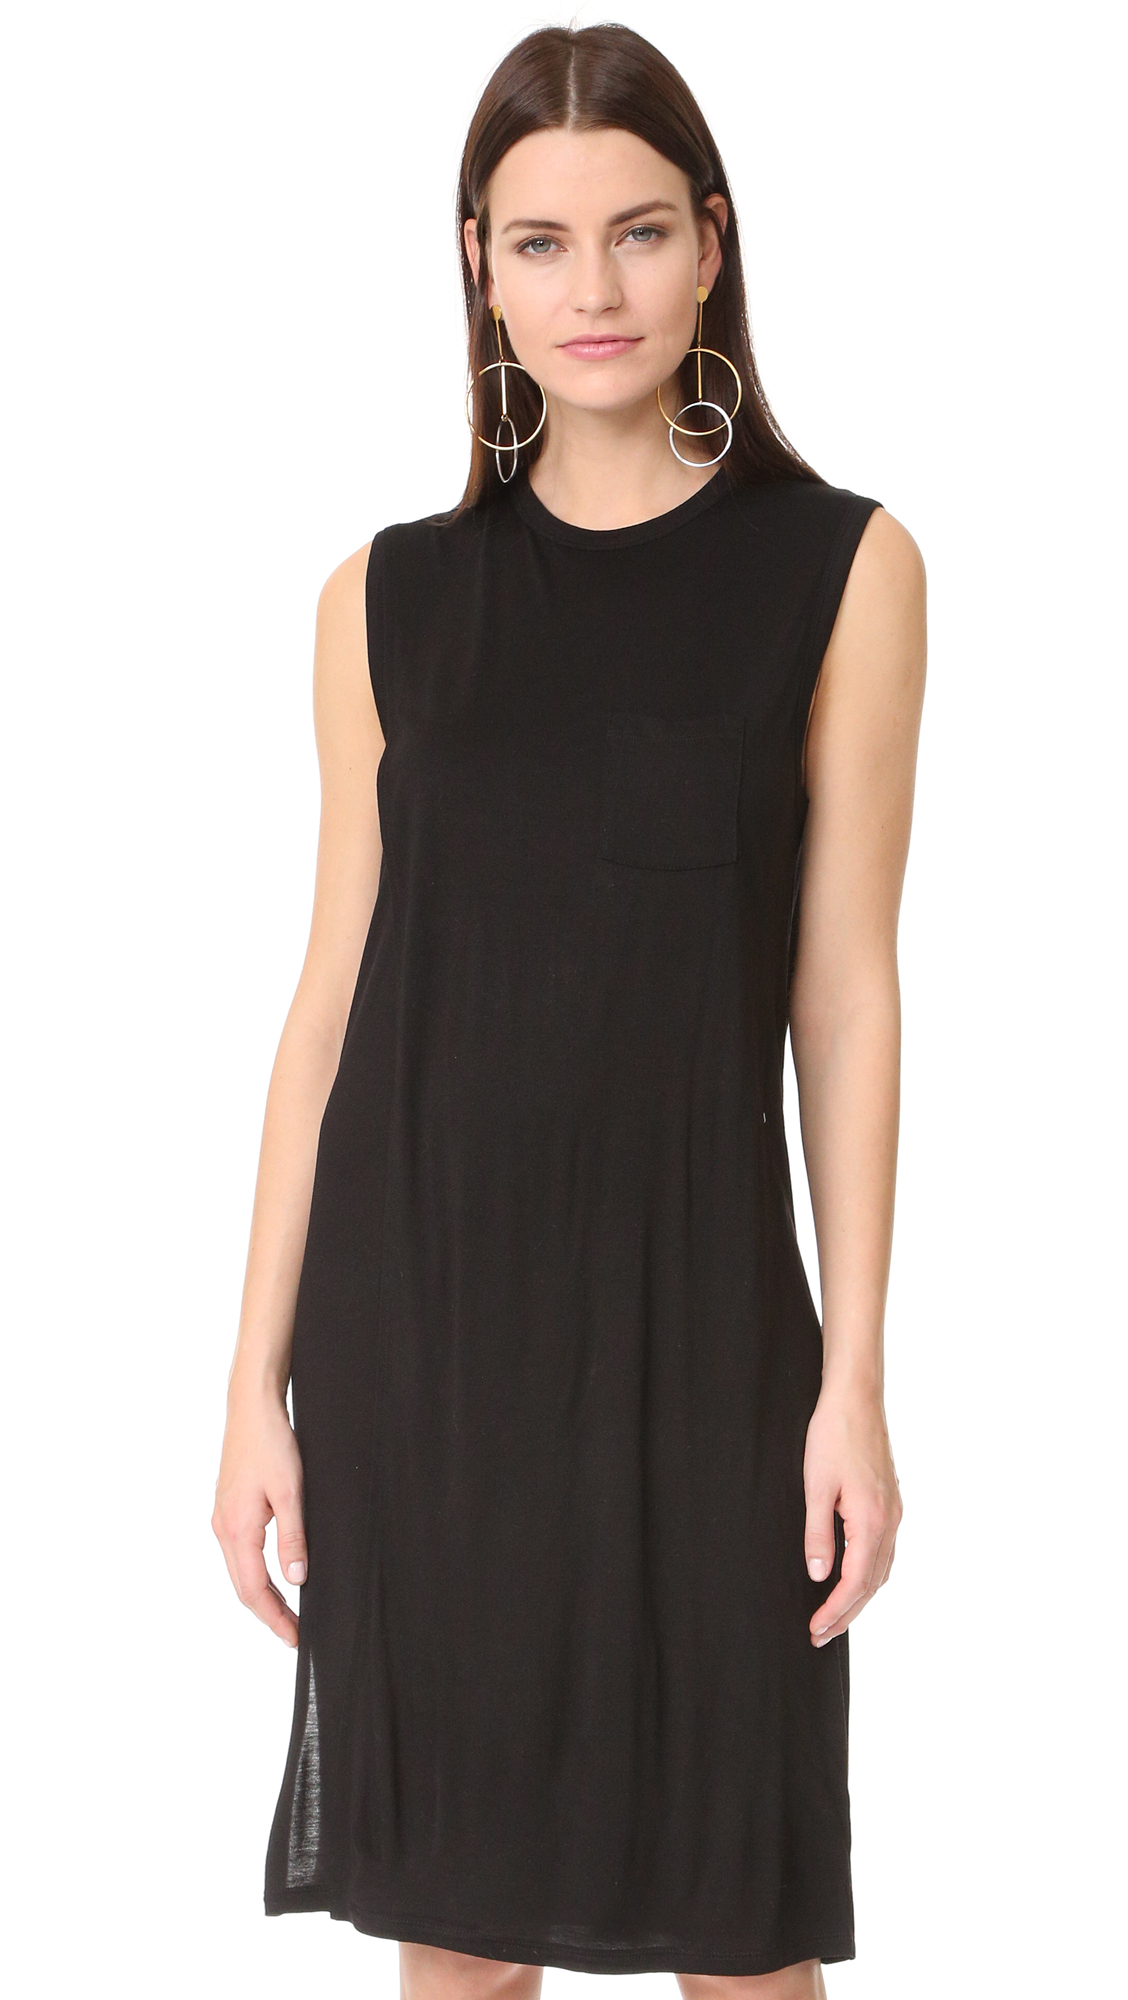 T by Alexander Wang Classic Overlap Dress with Pocket - Black